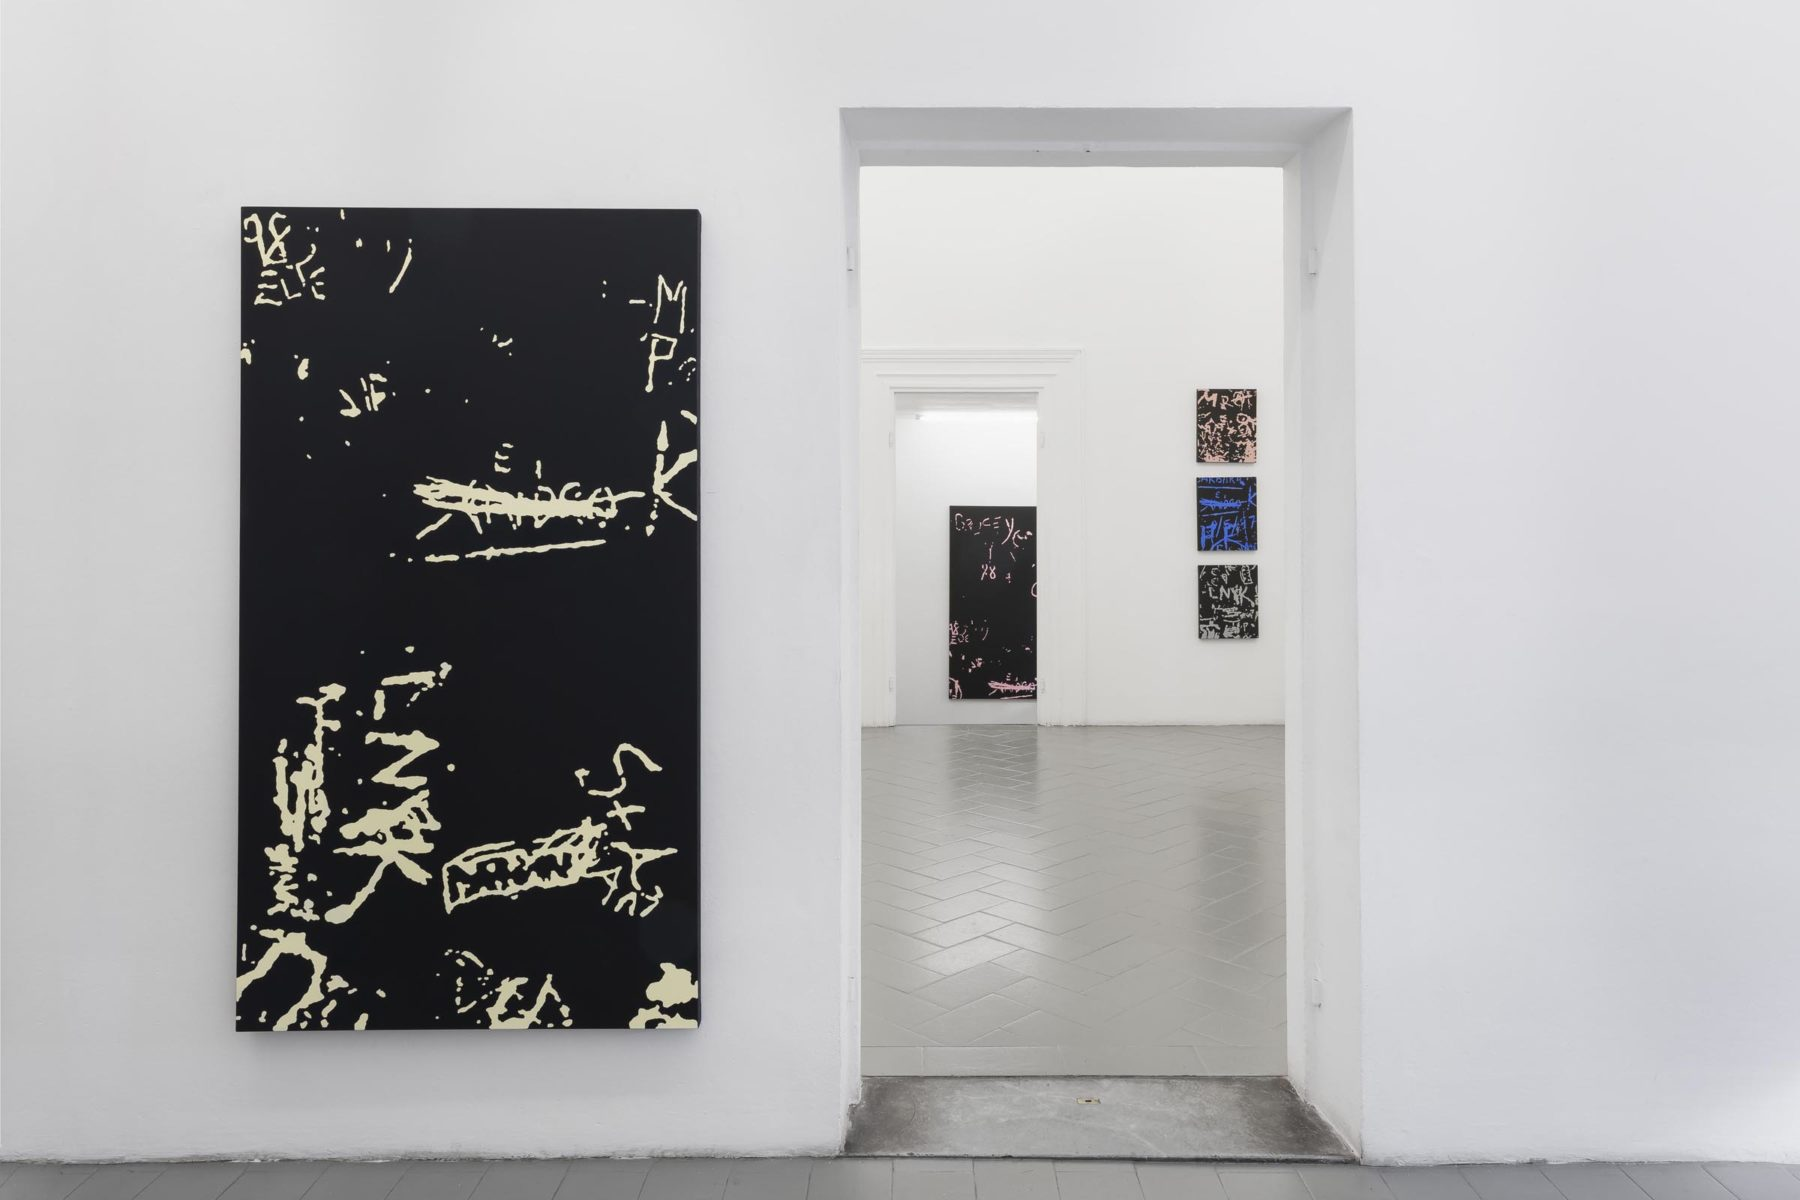 Beneath the Surface, installation view (works by P. Matos), Eduardo Secci Contemporary, Florence, ph. S. Maniero